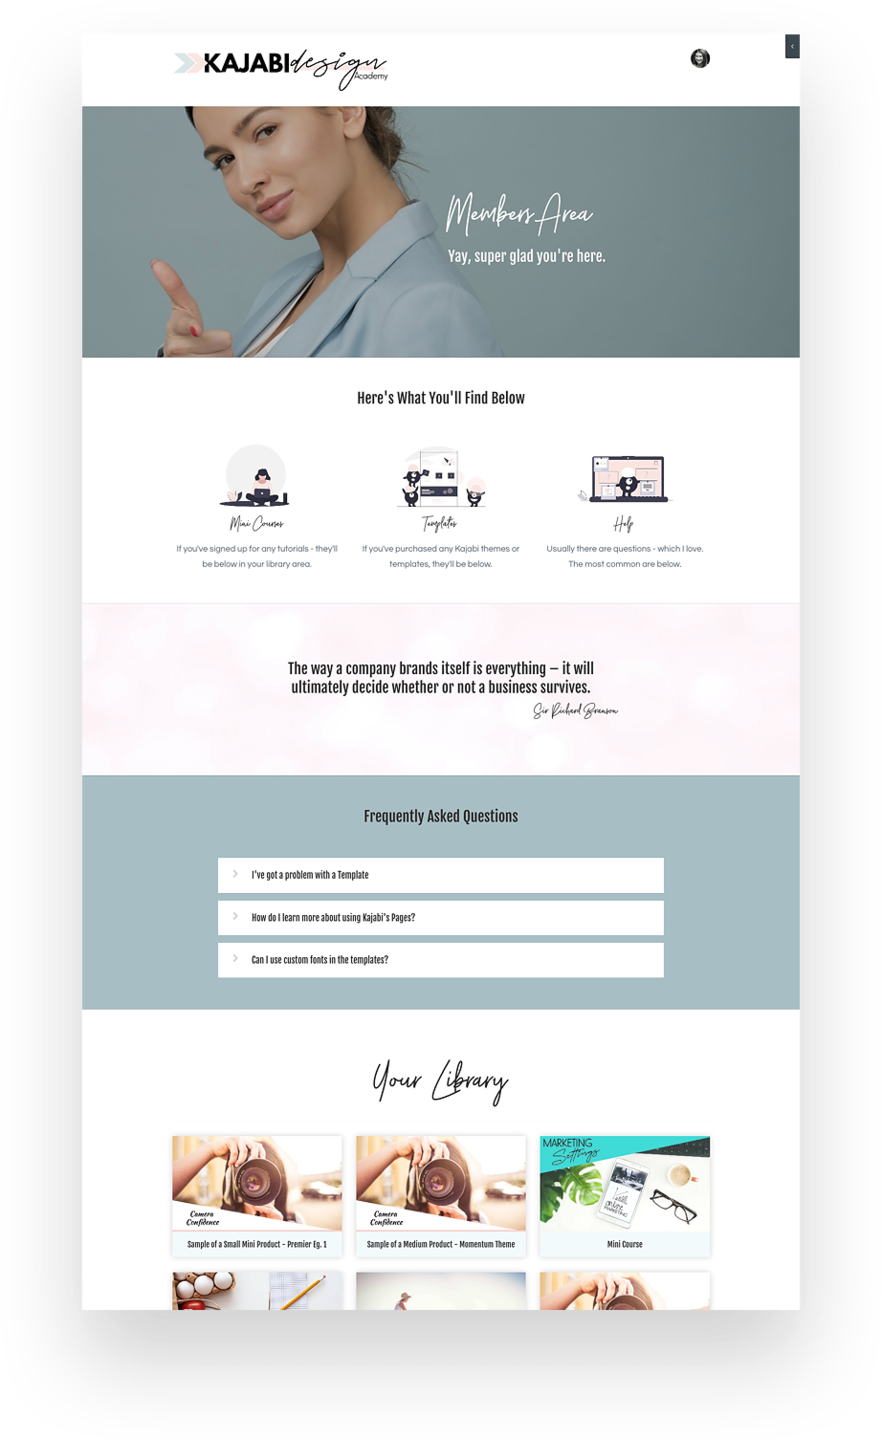 Penny In Your Pocket - Kajabi Website Design